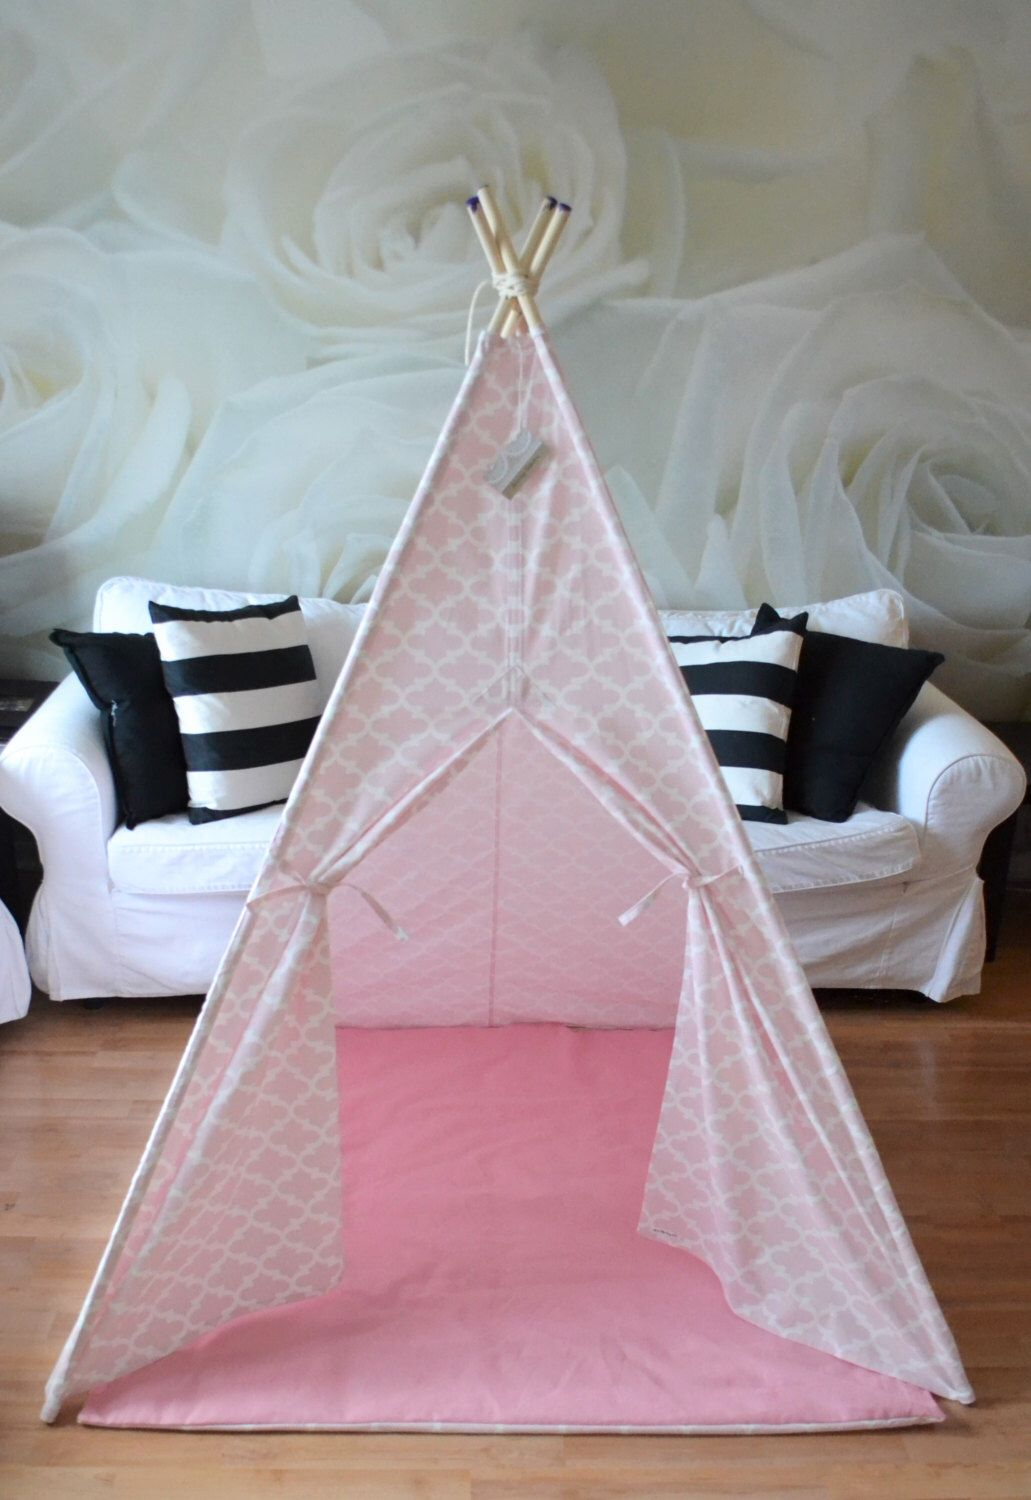 Teepee play tent with poles and play mat - pink and white treillis morrocan 4 panels & Teepee play tent with poles and play mat - pink and white treillis ...